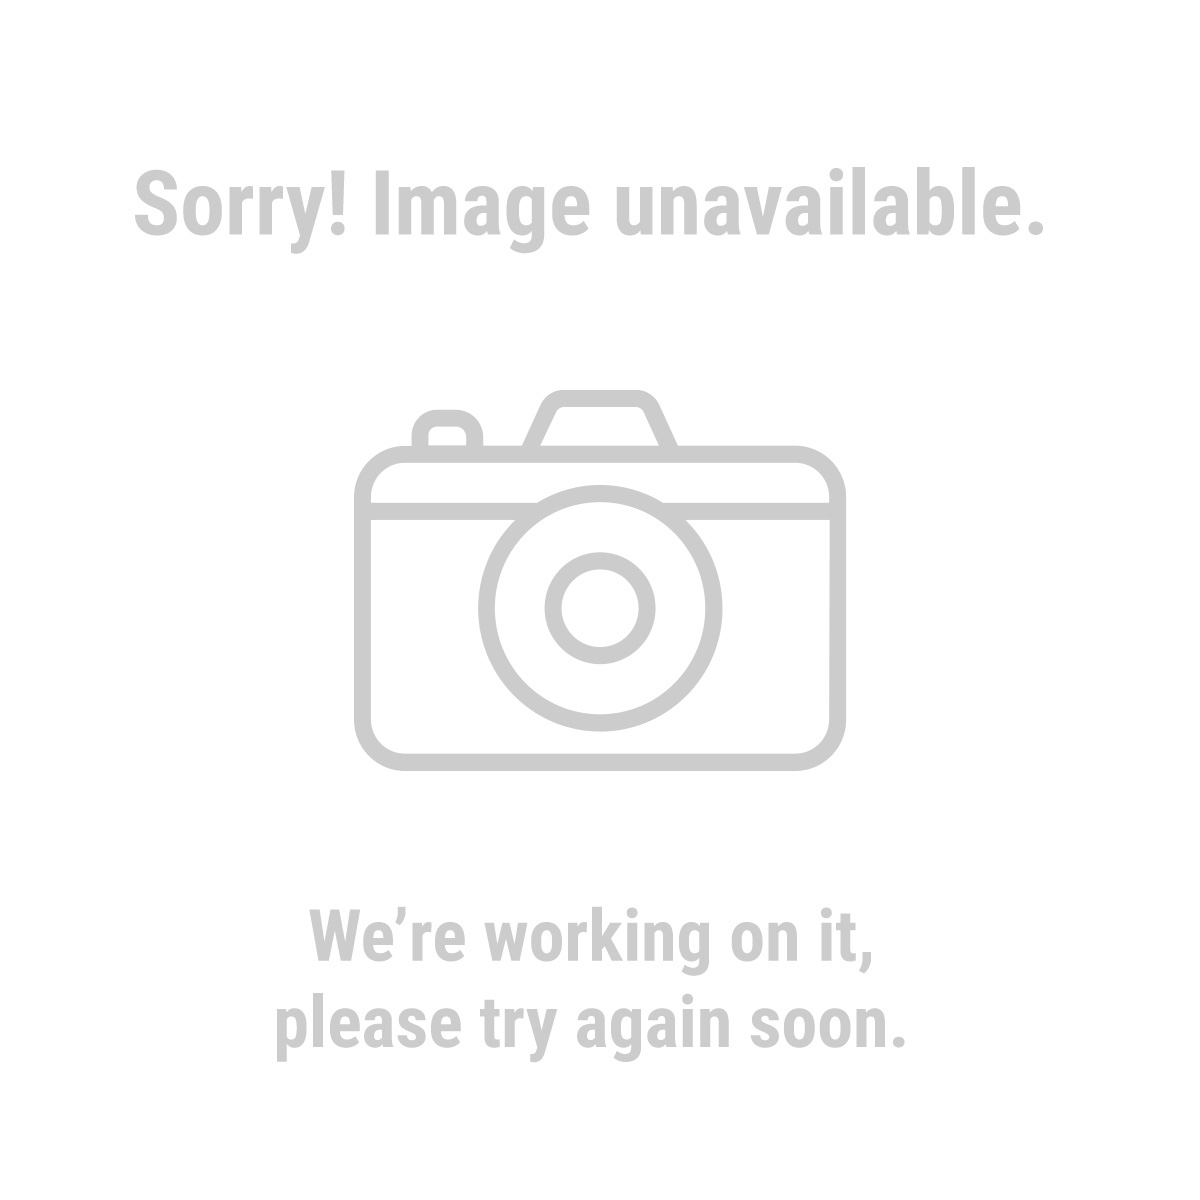 Chicago Electric Power Tools 63270 2 Amp 5 in. Random Orbital Heavy Duty Palm Sander